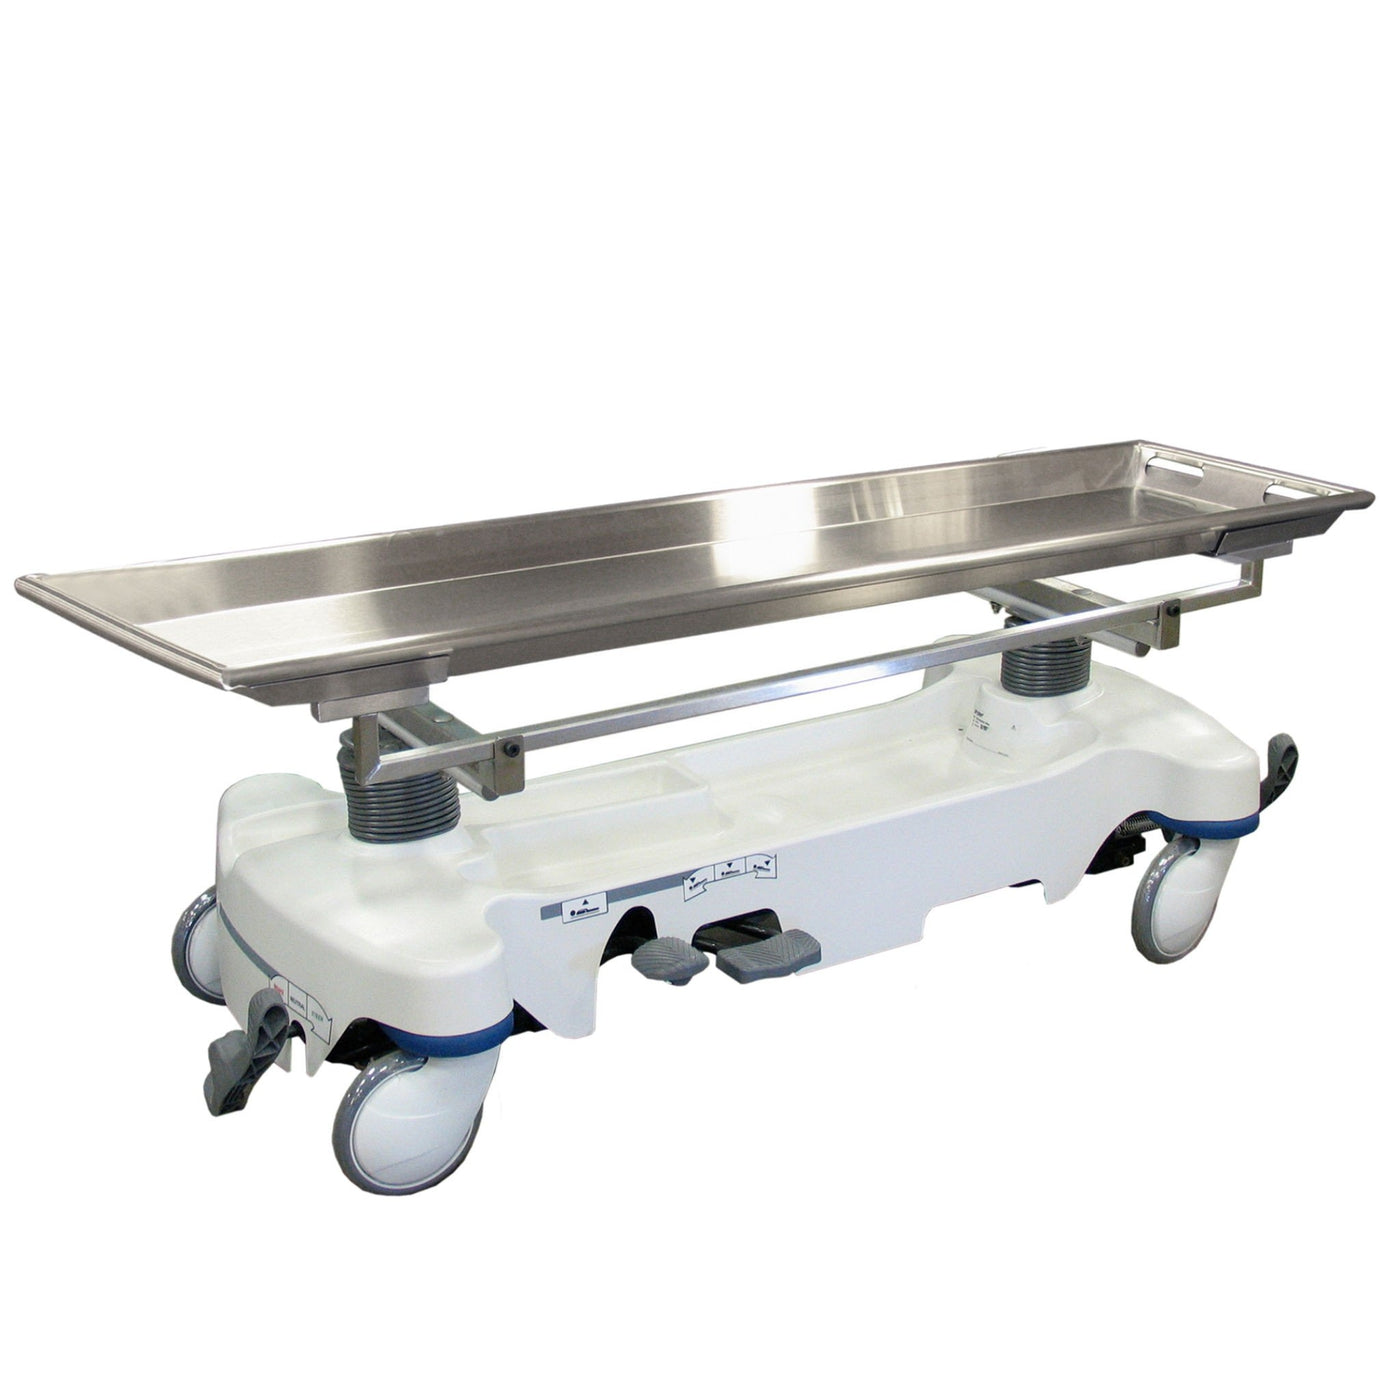 600018-H Hydraulic Autopsy Carriers-Body Transporter-Mortech Manufacturing Company Inc. Quality Stainless Steel Autopsy, Morgue, Funeral Home, Necropsy, Veterinary / Anatomy, Dissection Equipment and Accessories